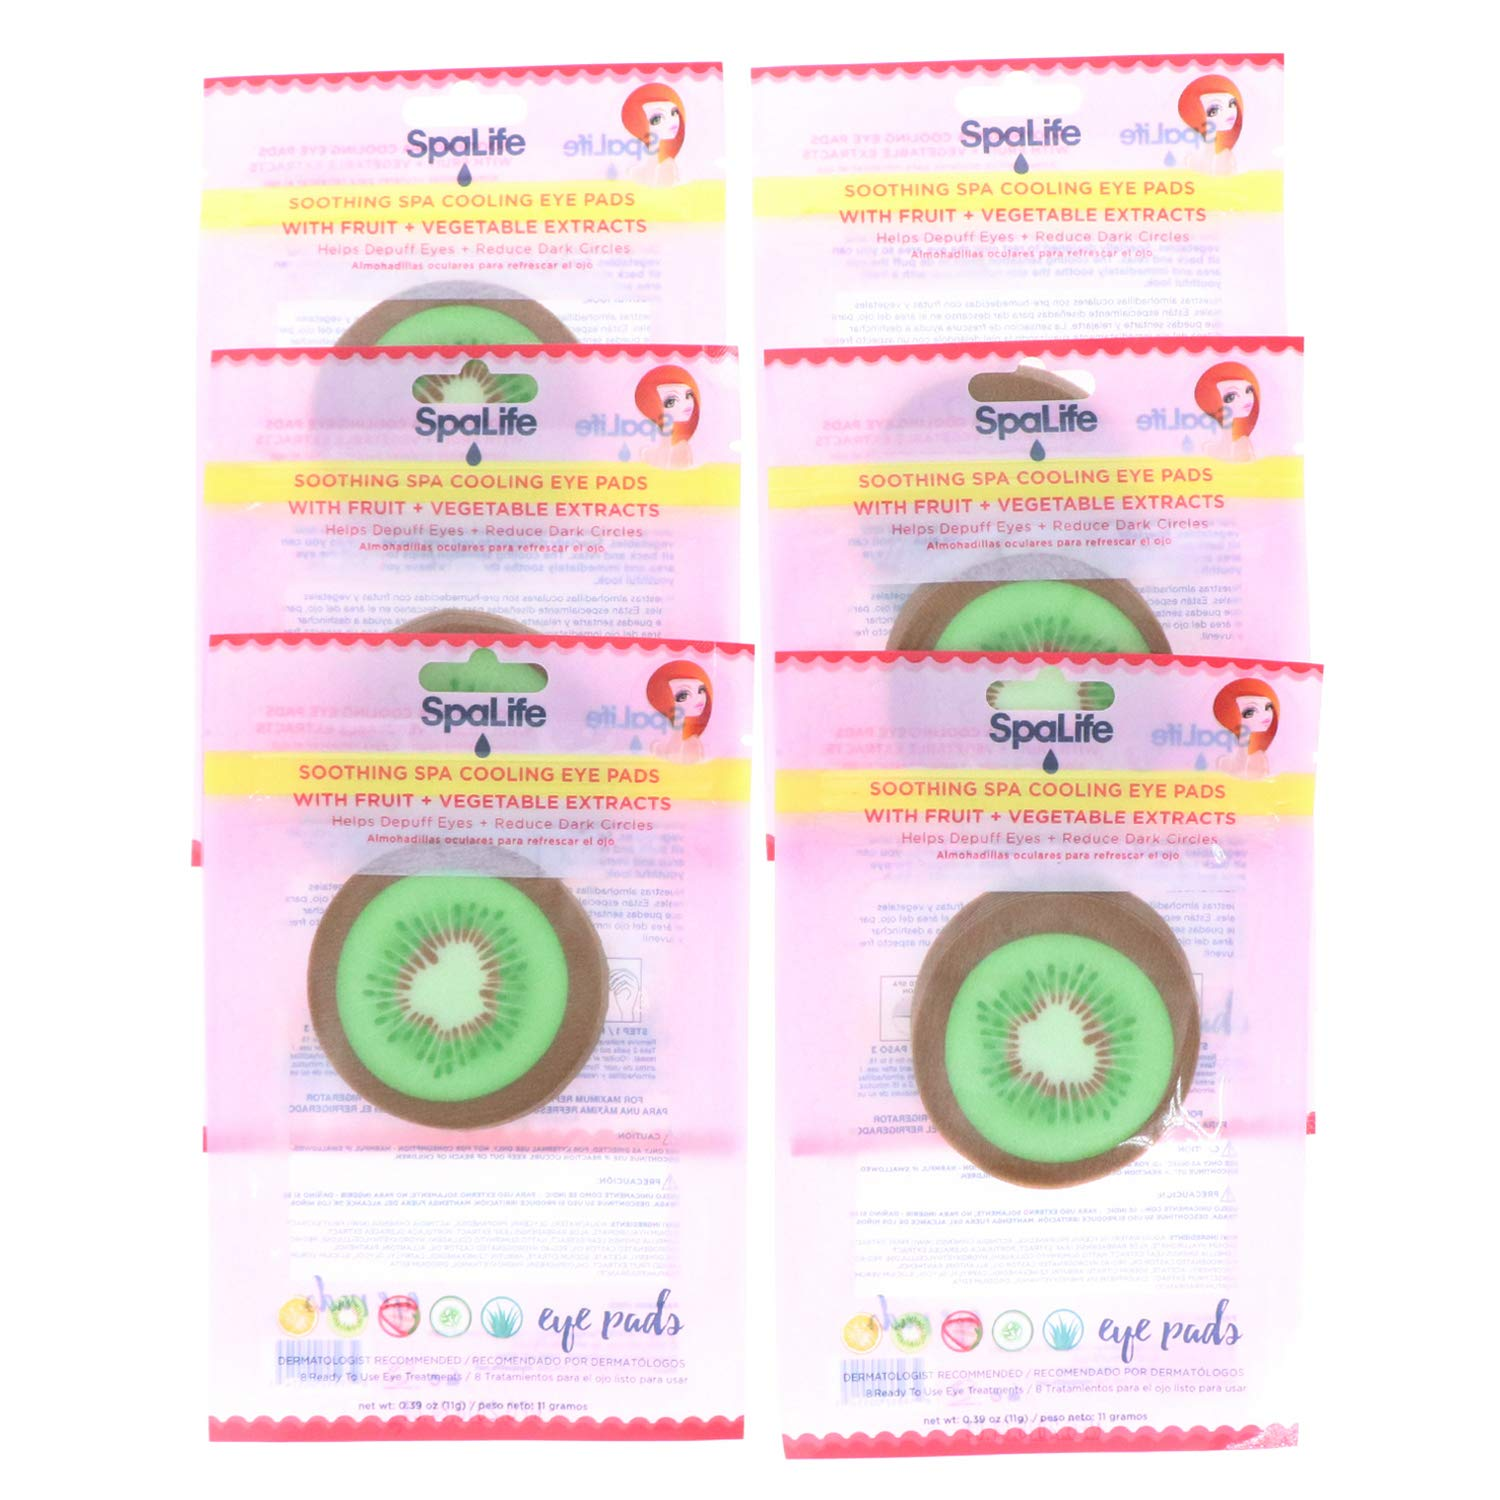 SpaLife Korean Soothing Spa Cooling Eye Pads - 48 Pads - With Fruit + Vegetable Extracts - Depuff Eyes + Reduce Dark Circles (Kiwi)